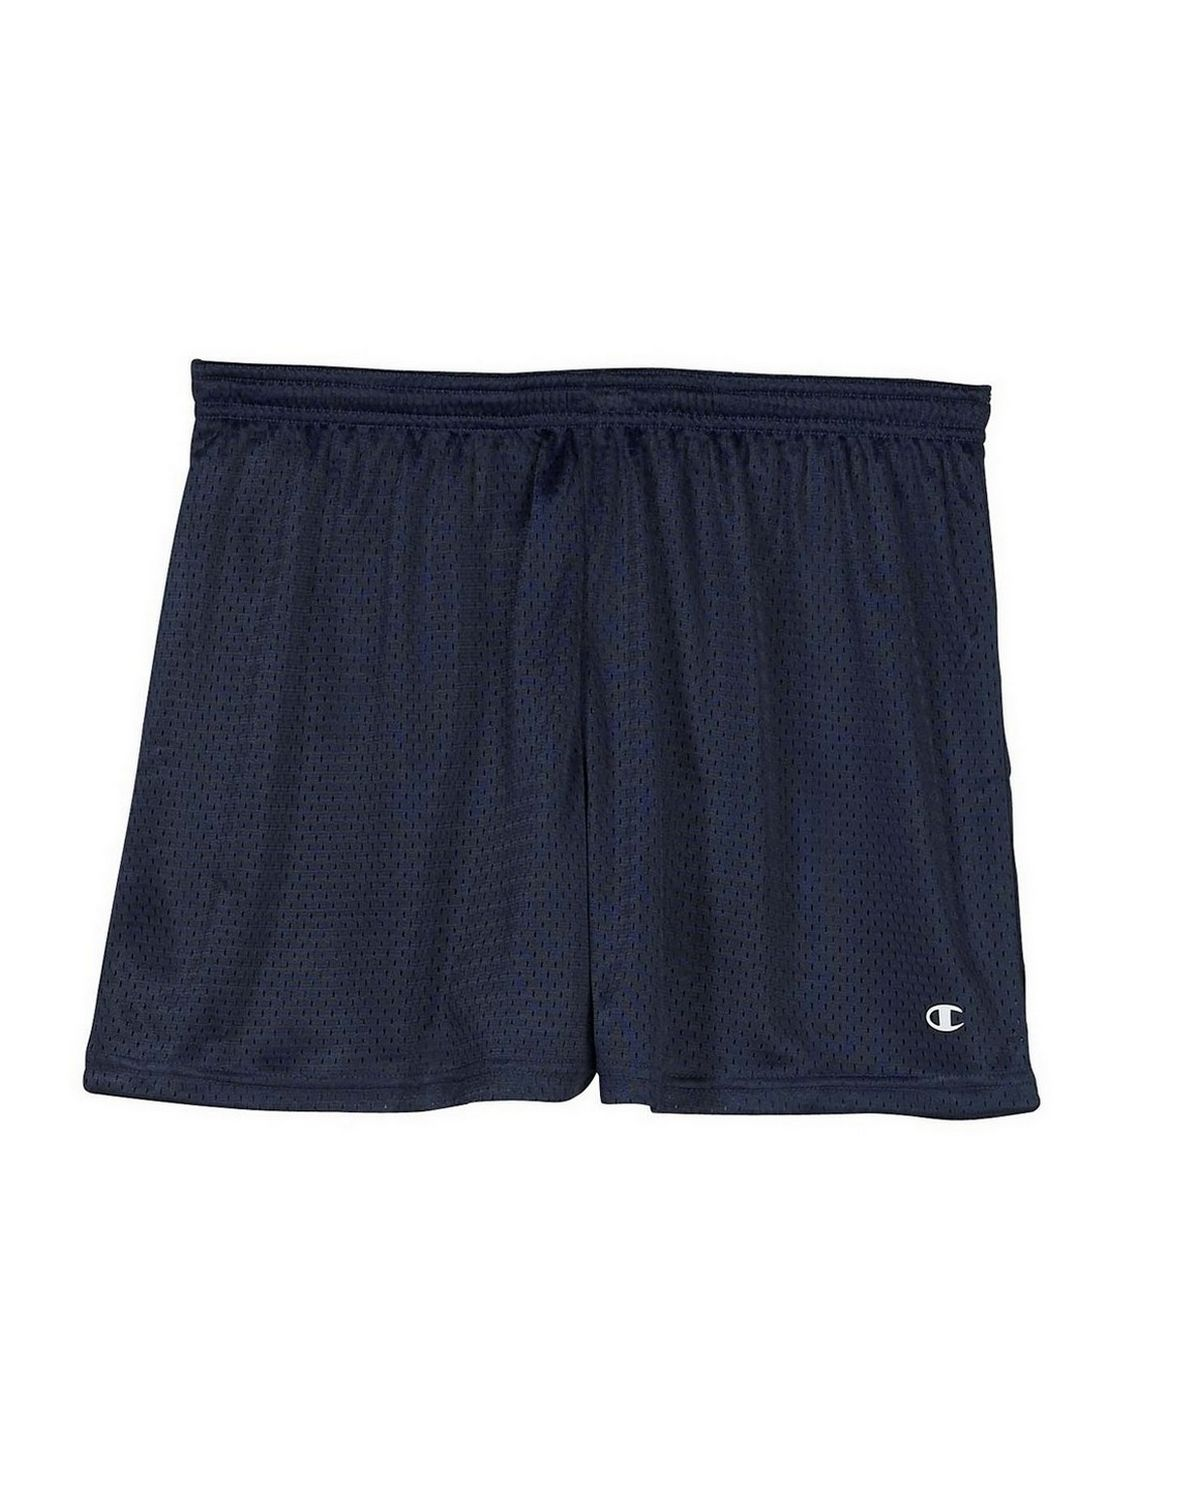 Champion 3393 Active Mesh Shorts - Navy - L 3393